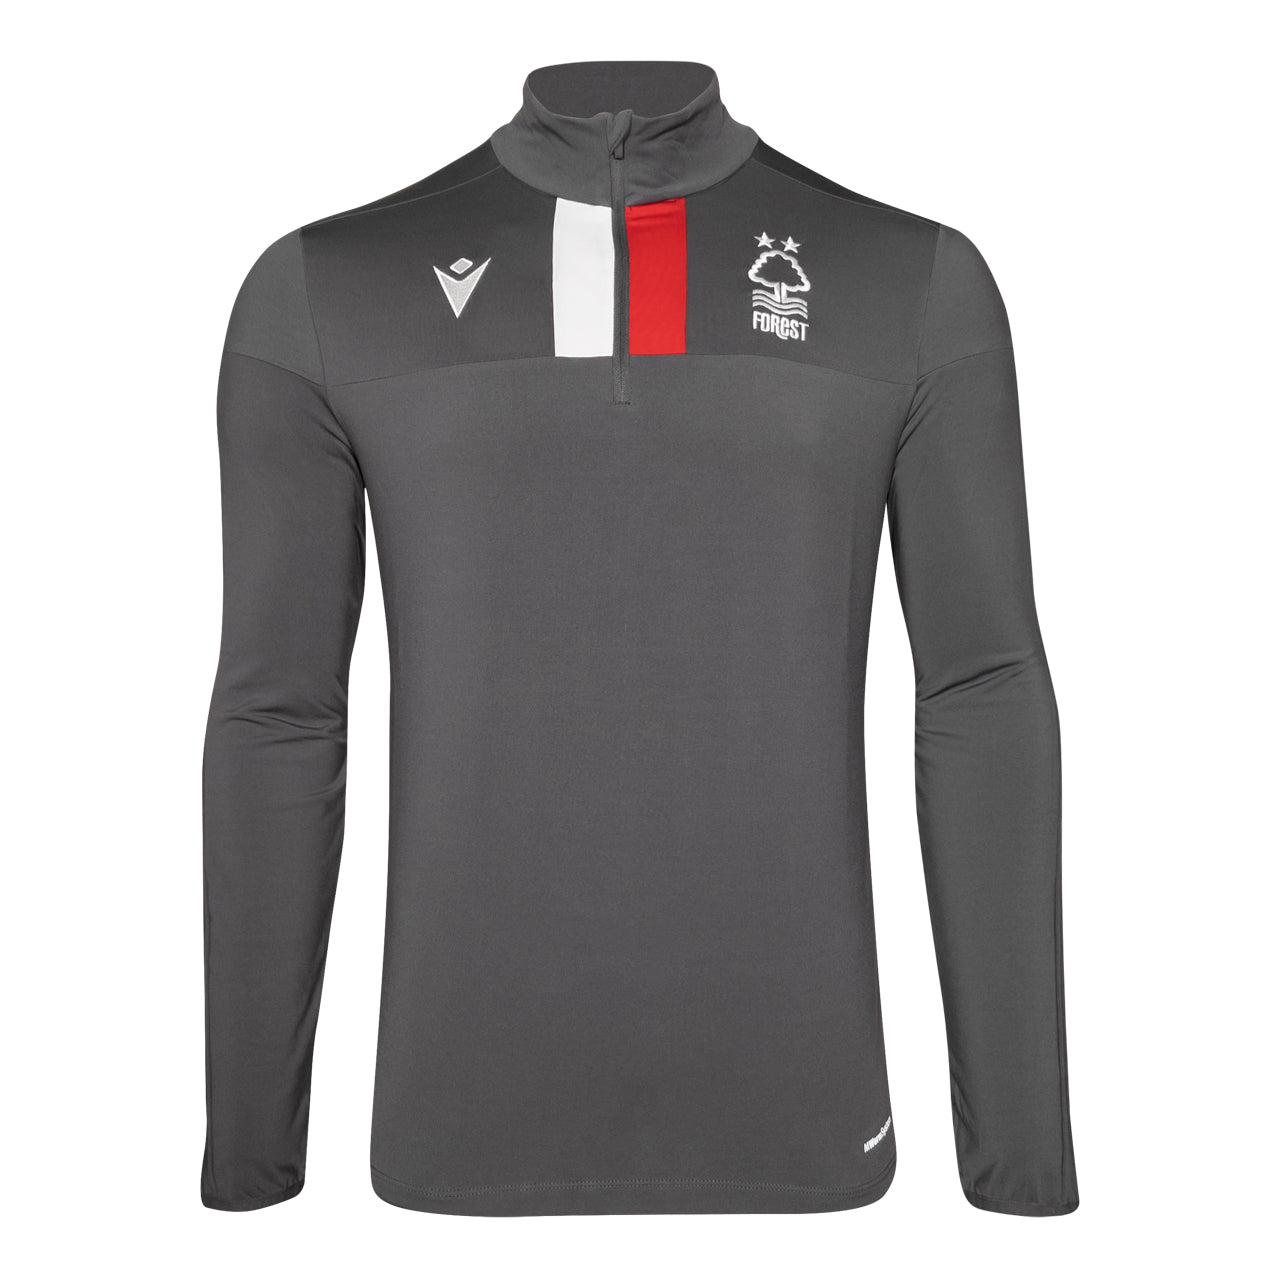 NFFC Junior Staff 1/4 Zip Top 19/20